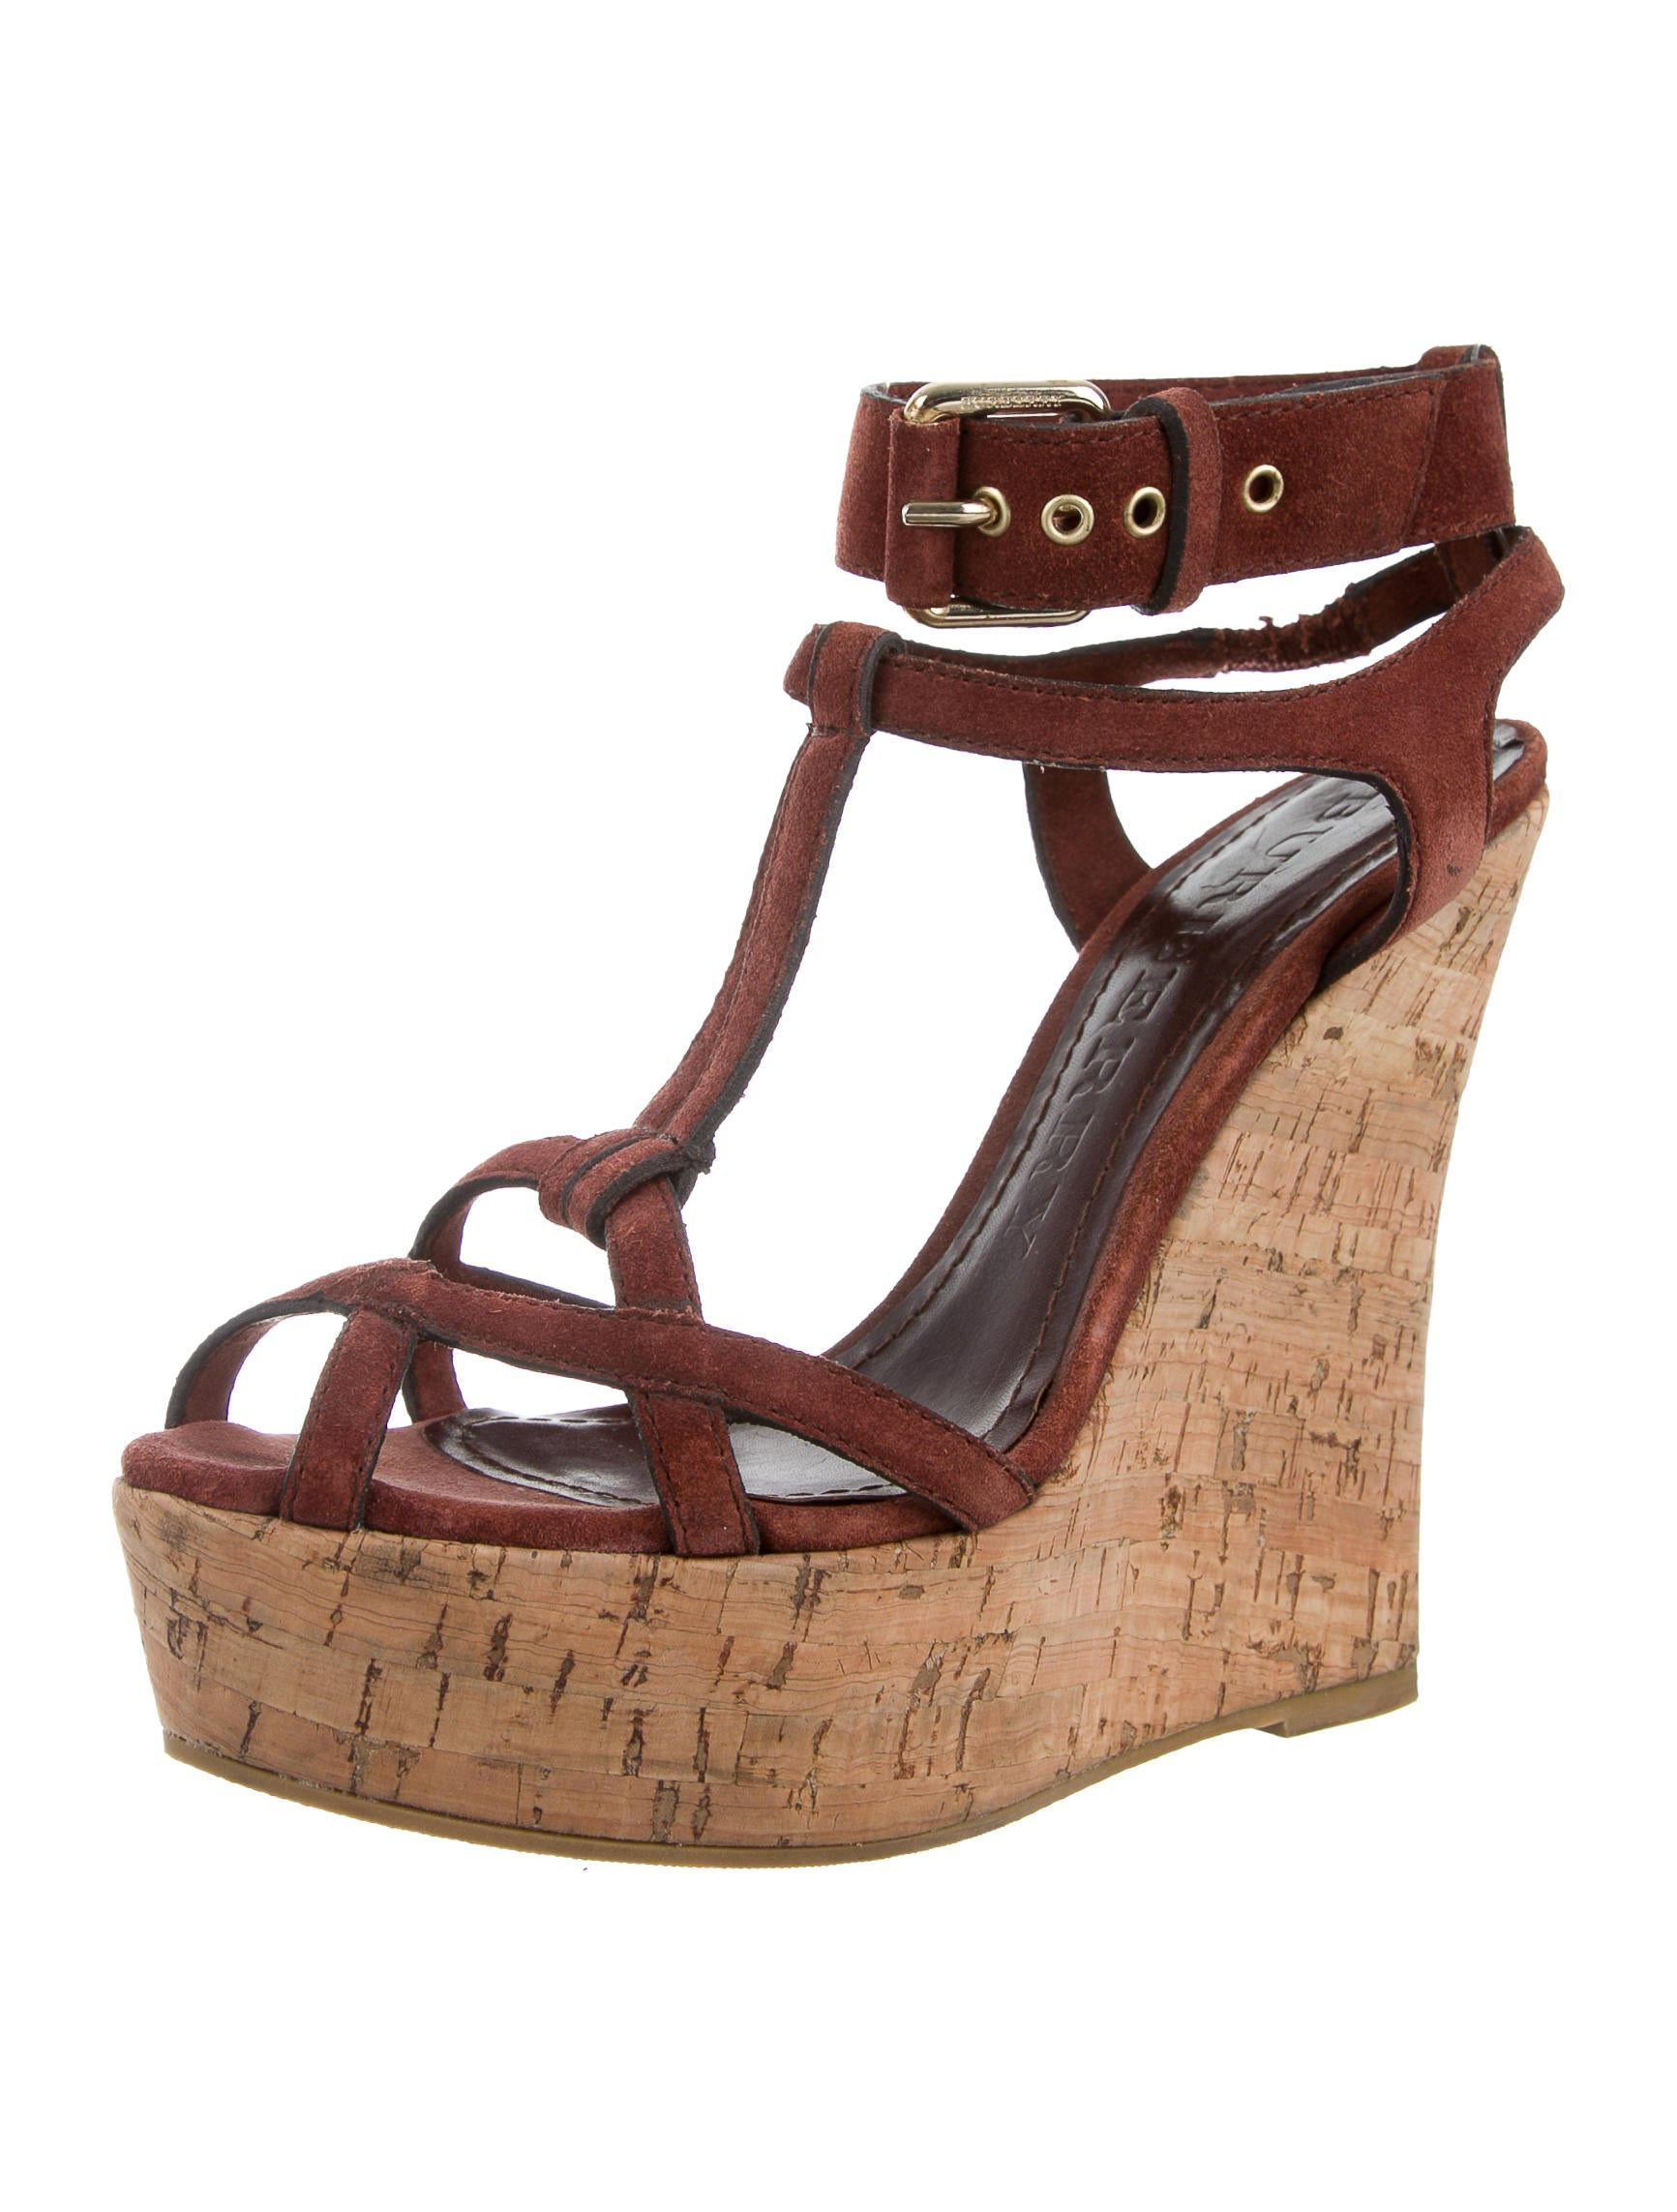 burberry suede ankle wrap wedges shoes bur62796 the